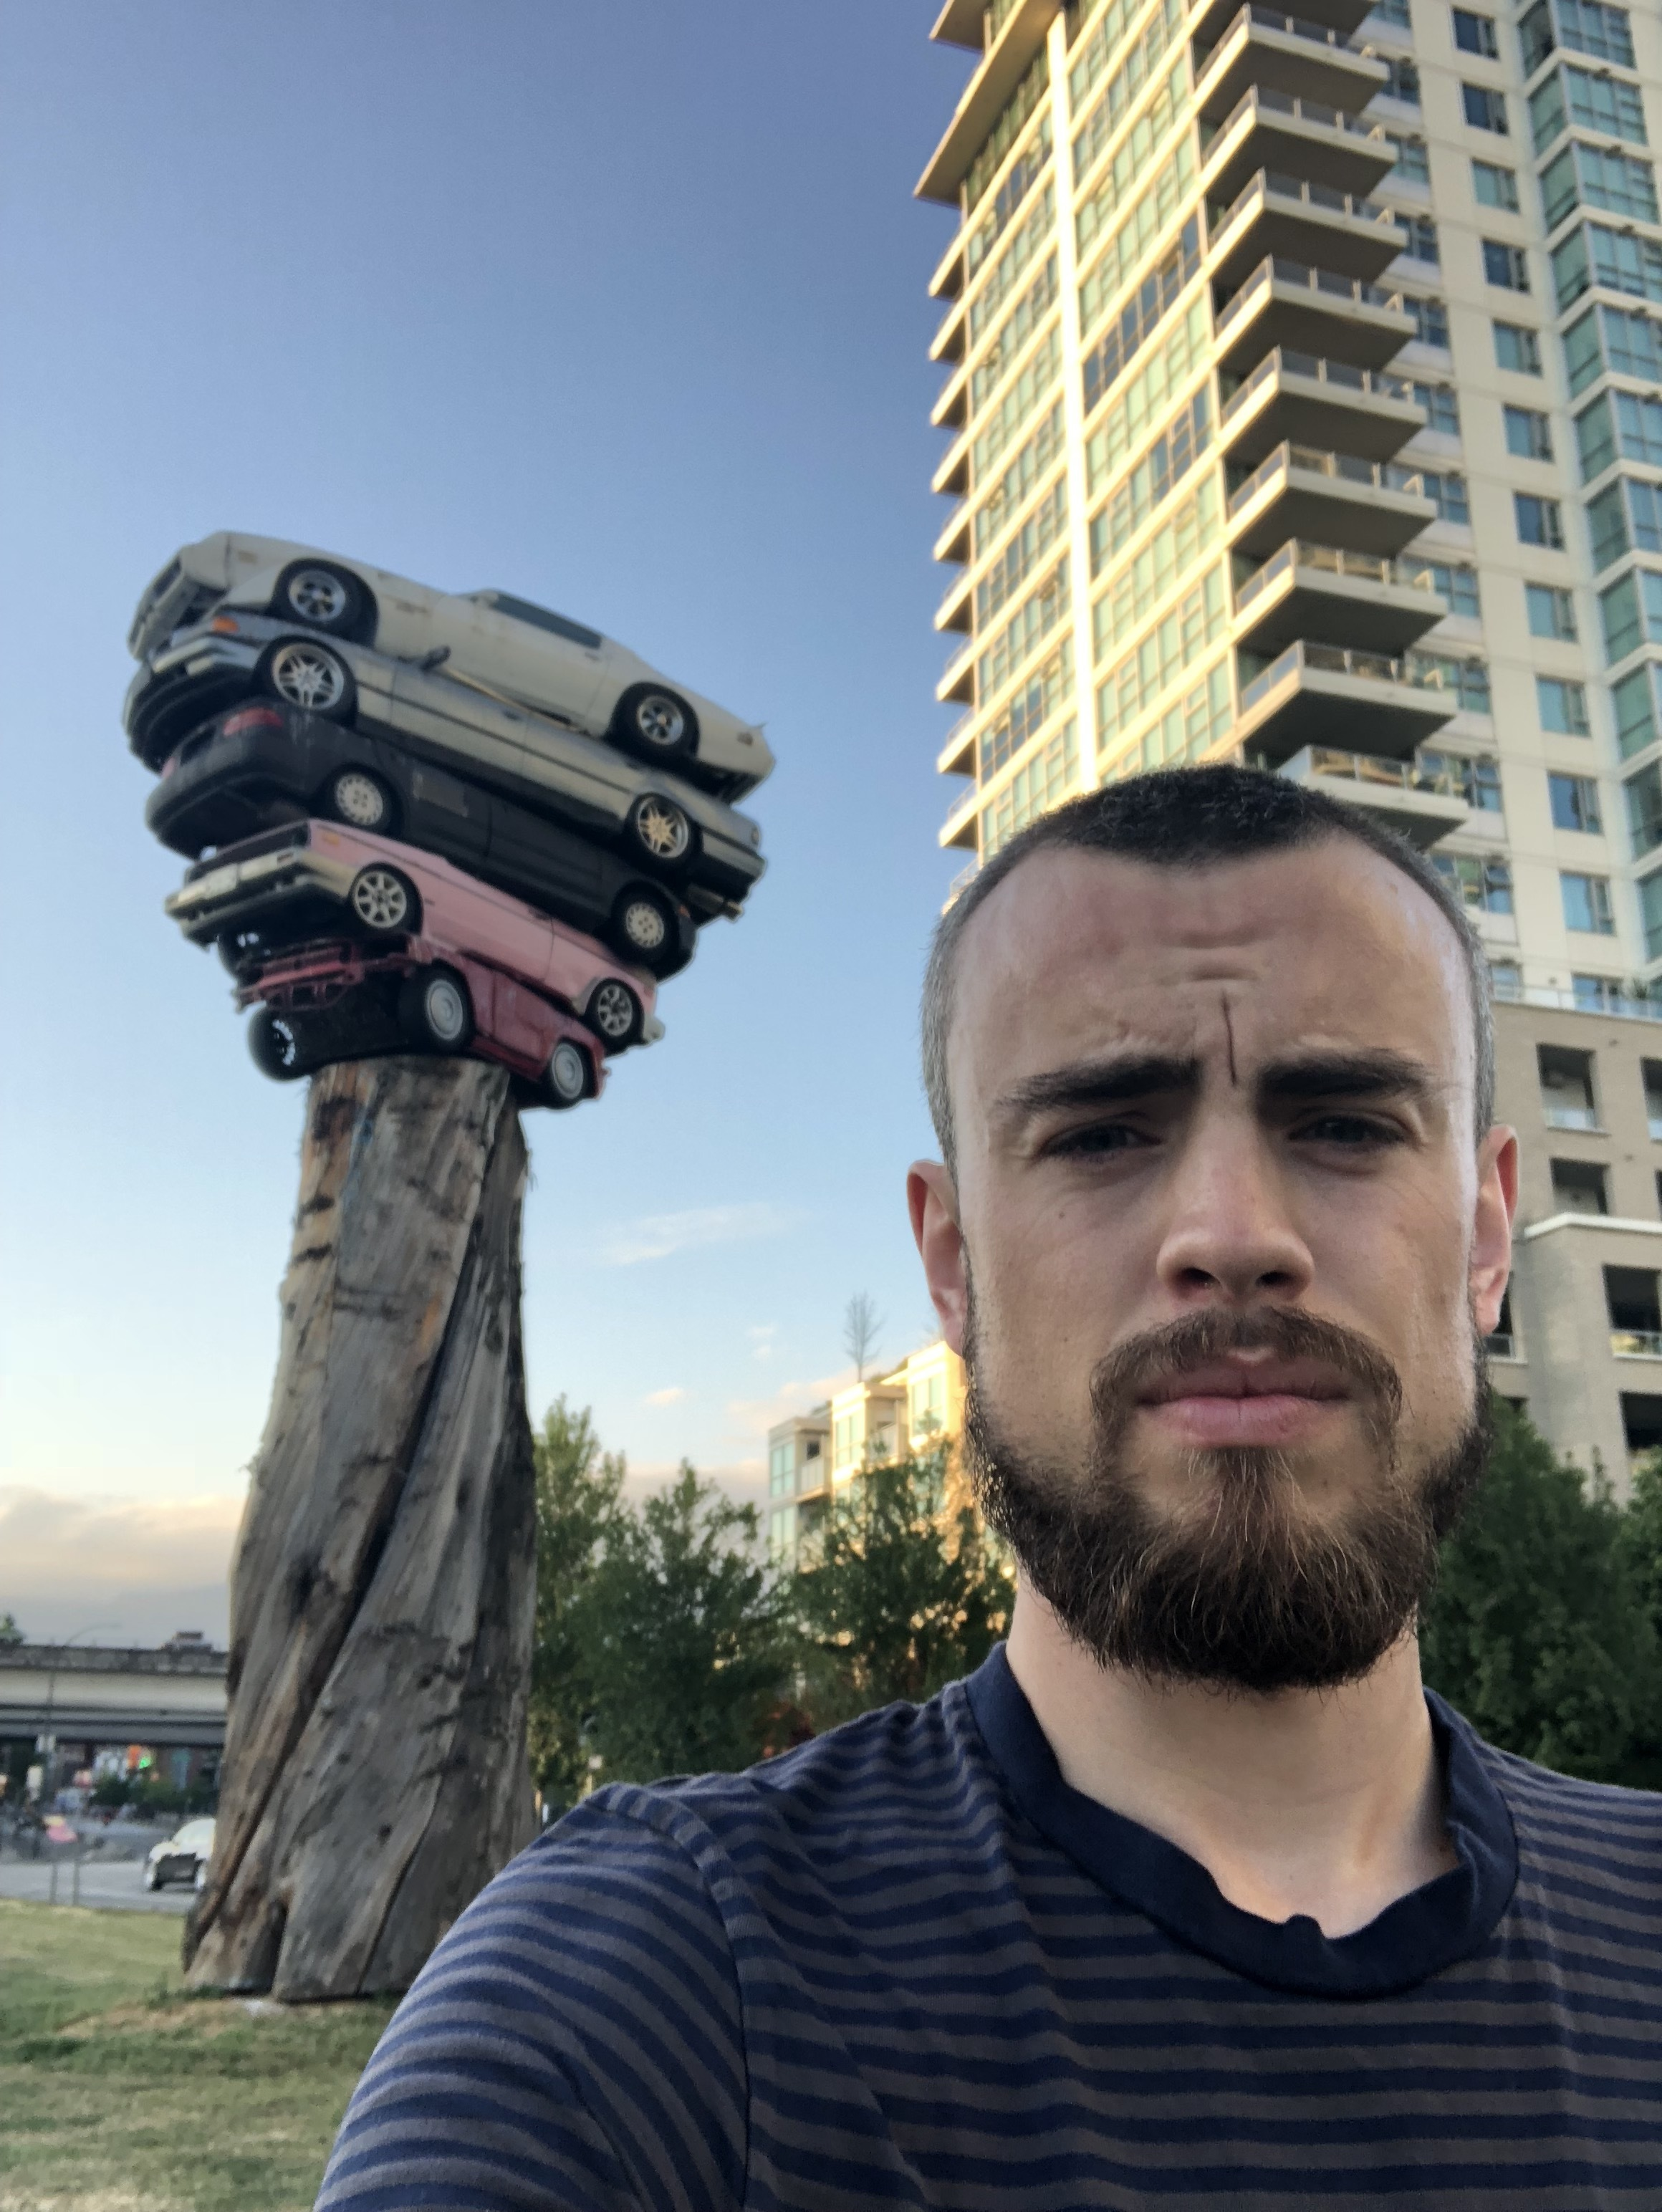 TobyBennett - The 2018-2020 Vancouver Biennale will create a lasting impact across the city. As a member of the VBYA, I am excited to see public art brought to unique locations throughout Vancouver. I am digital marketer by trade, with a focus on e-commerce.